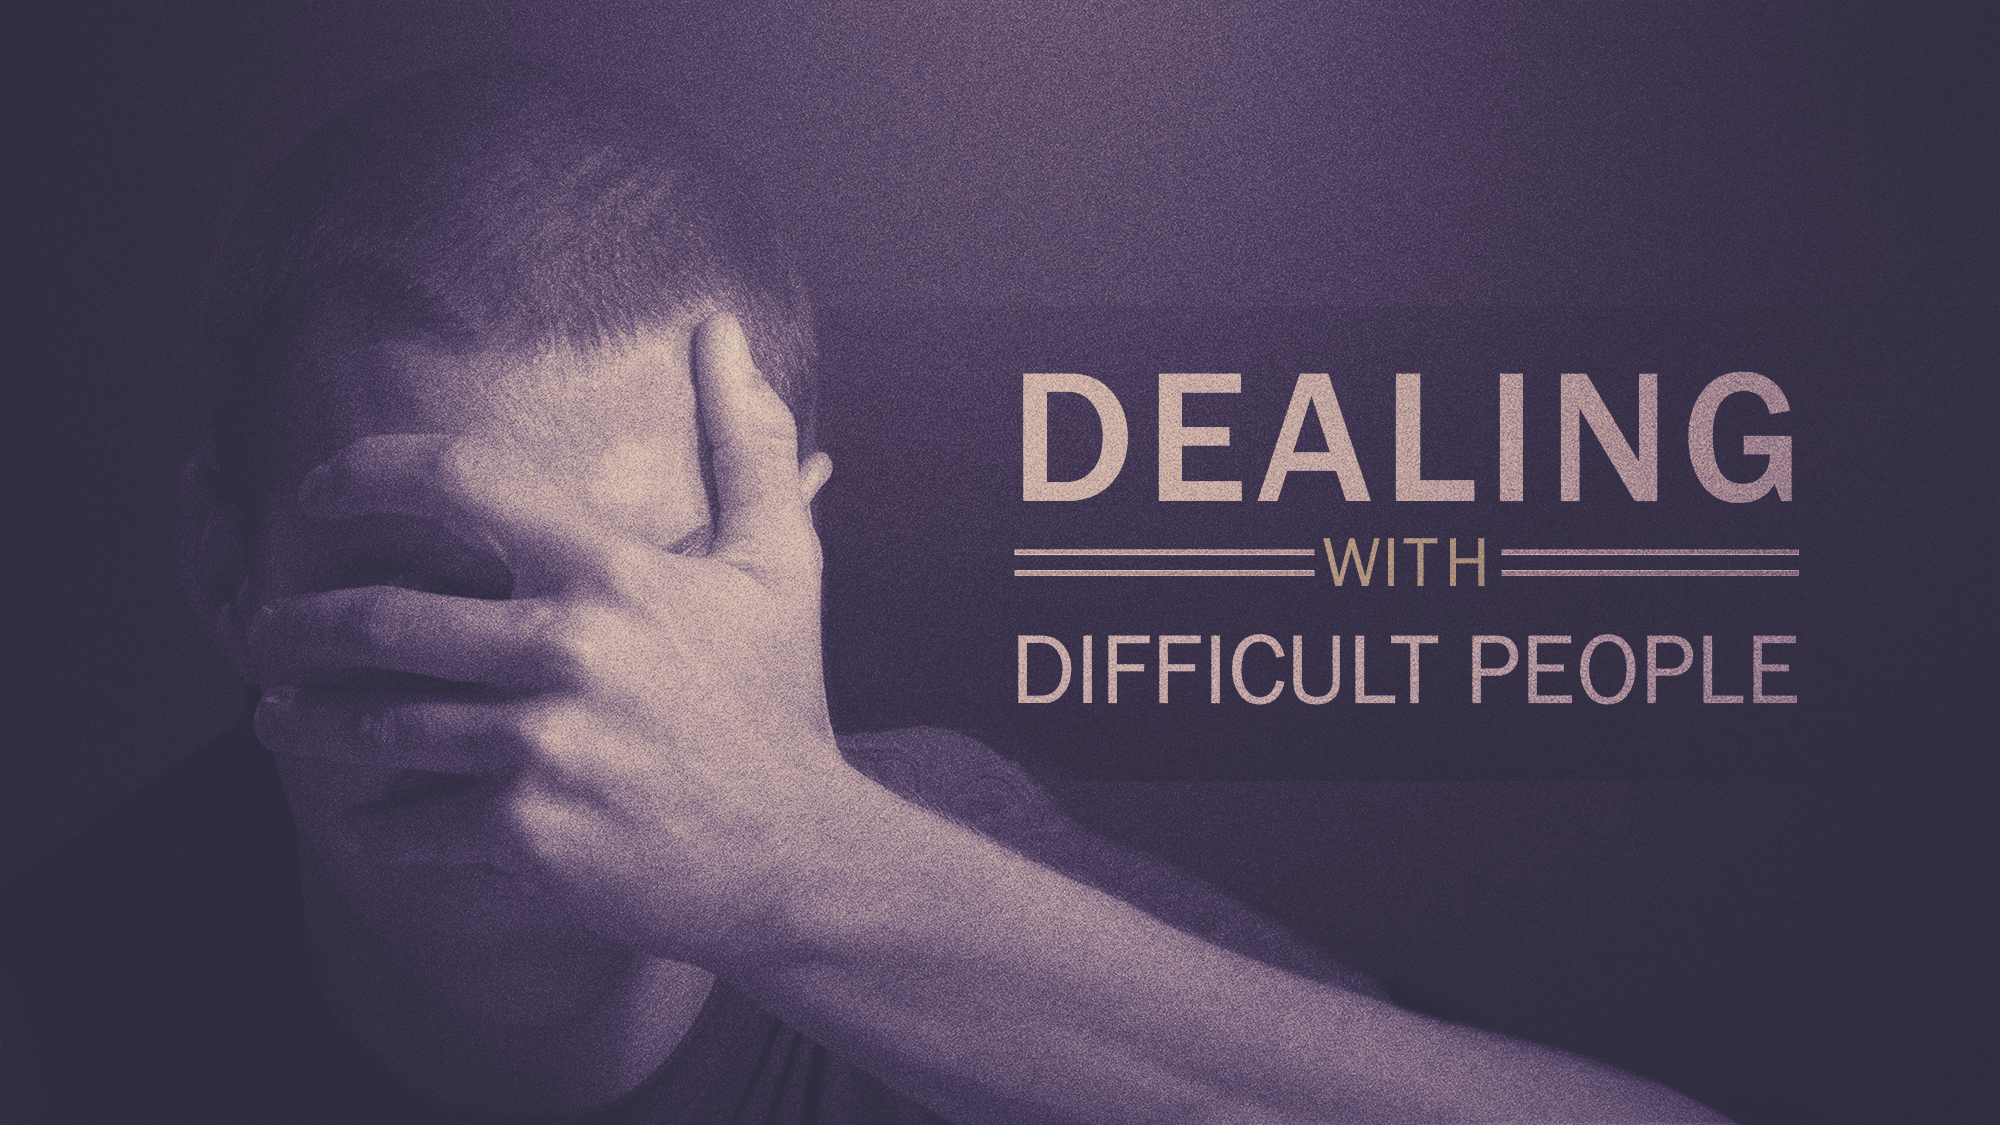 LEADERSHIP & DIFFICULT PEOPLE